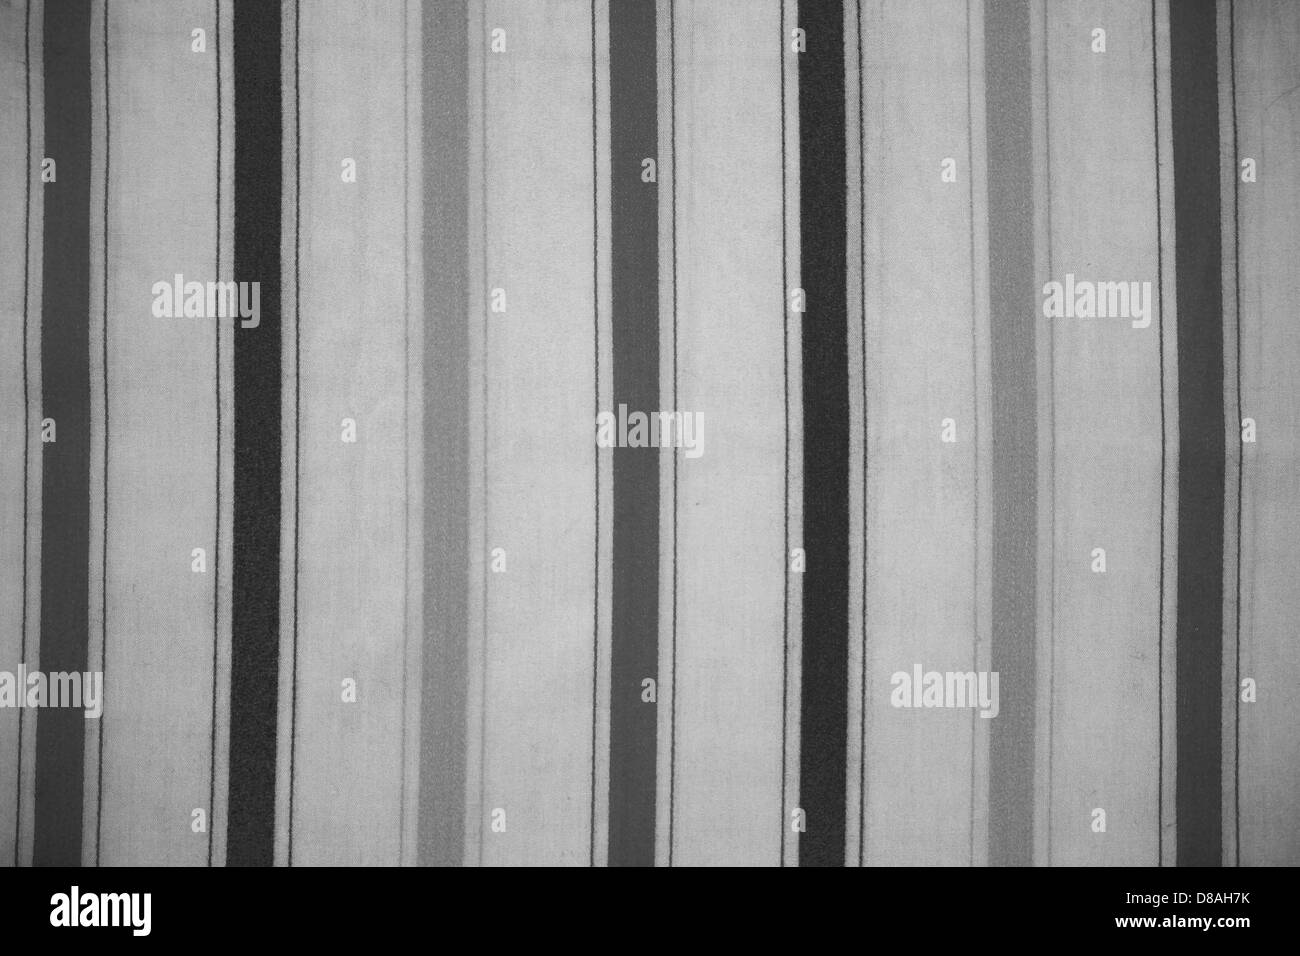 Striped Fabric Black And White Stock Photos Images Alamy